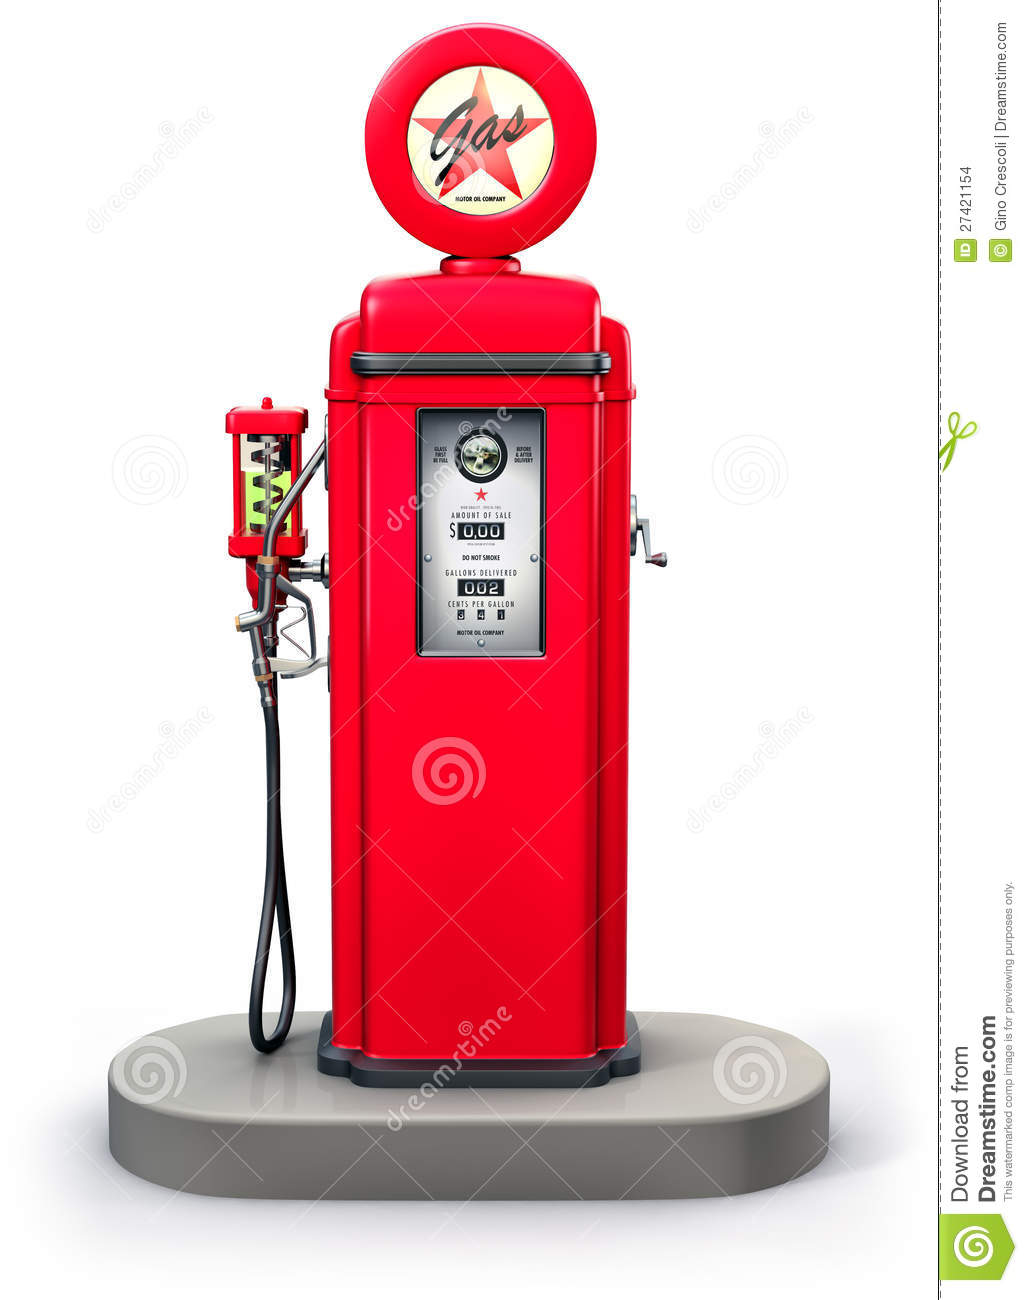 Old gas pump clipart.